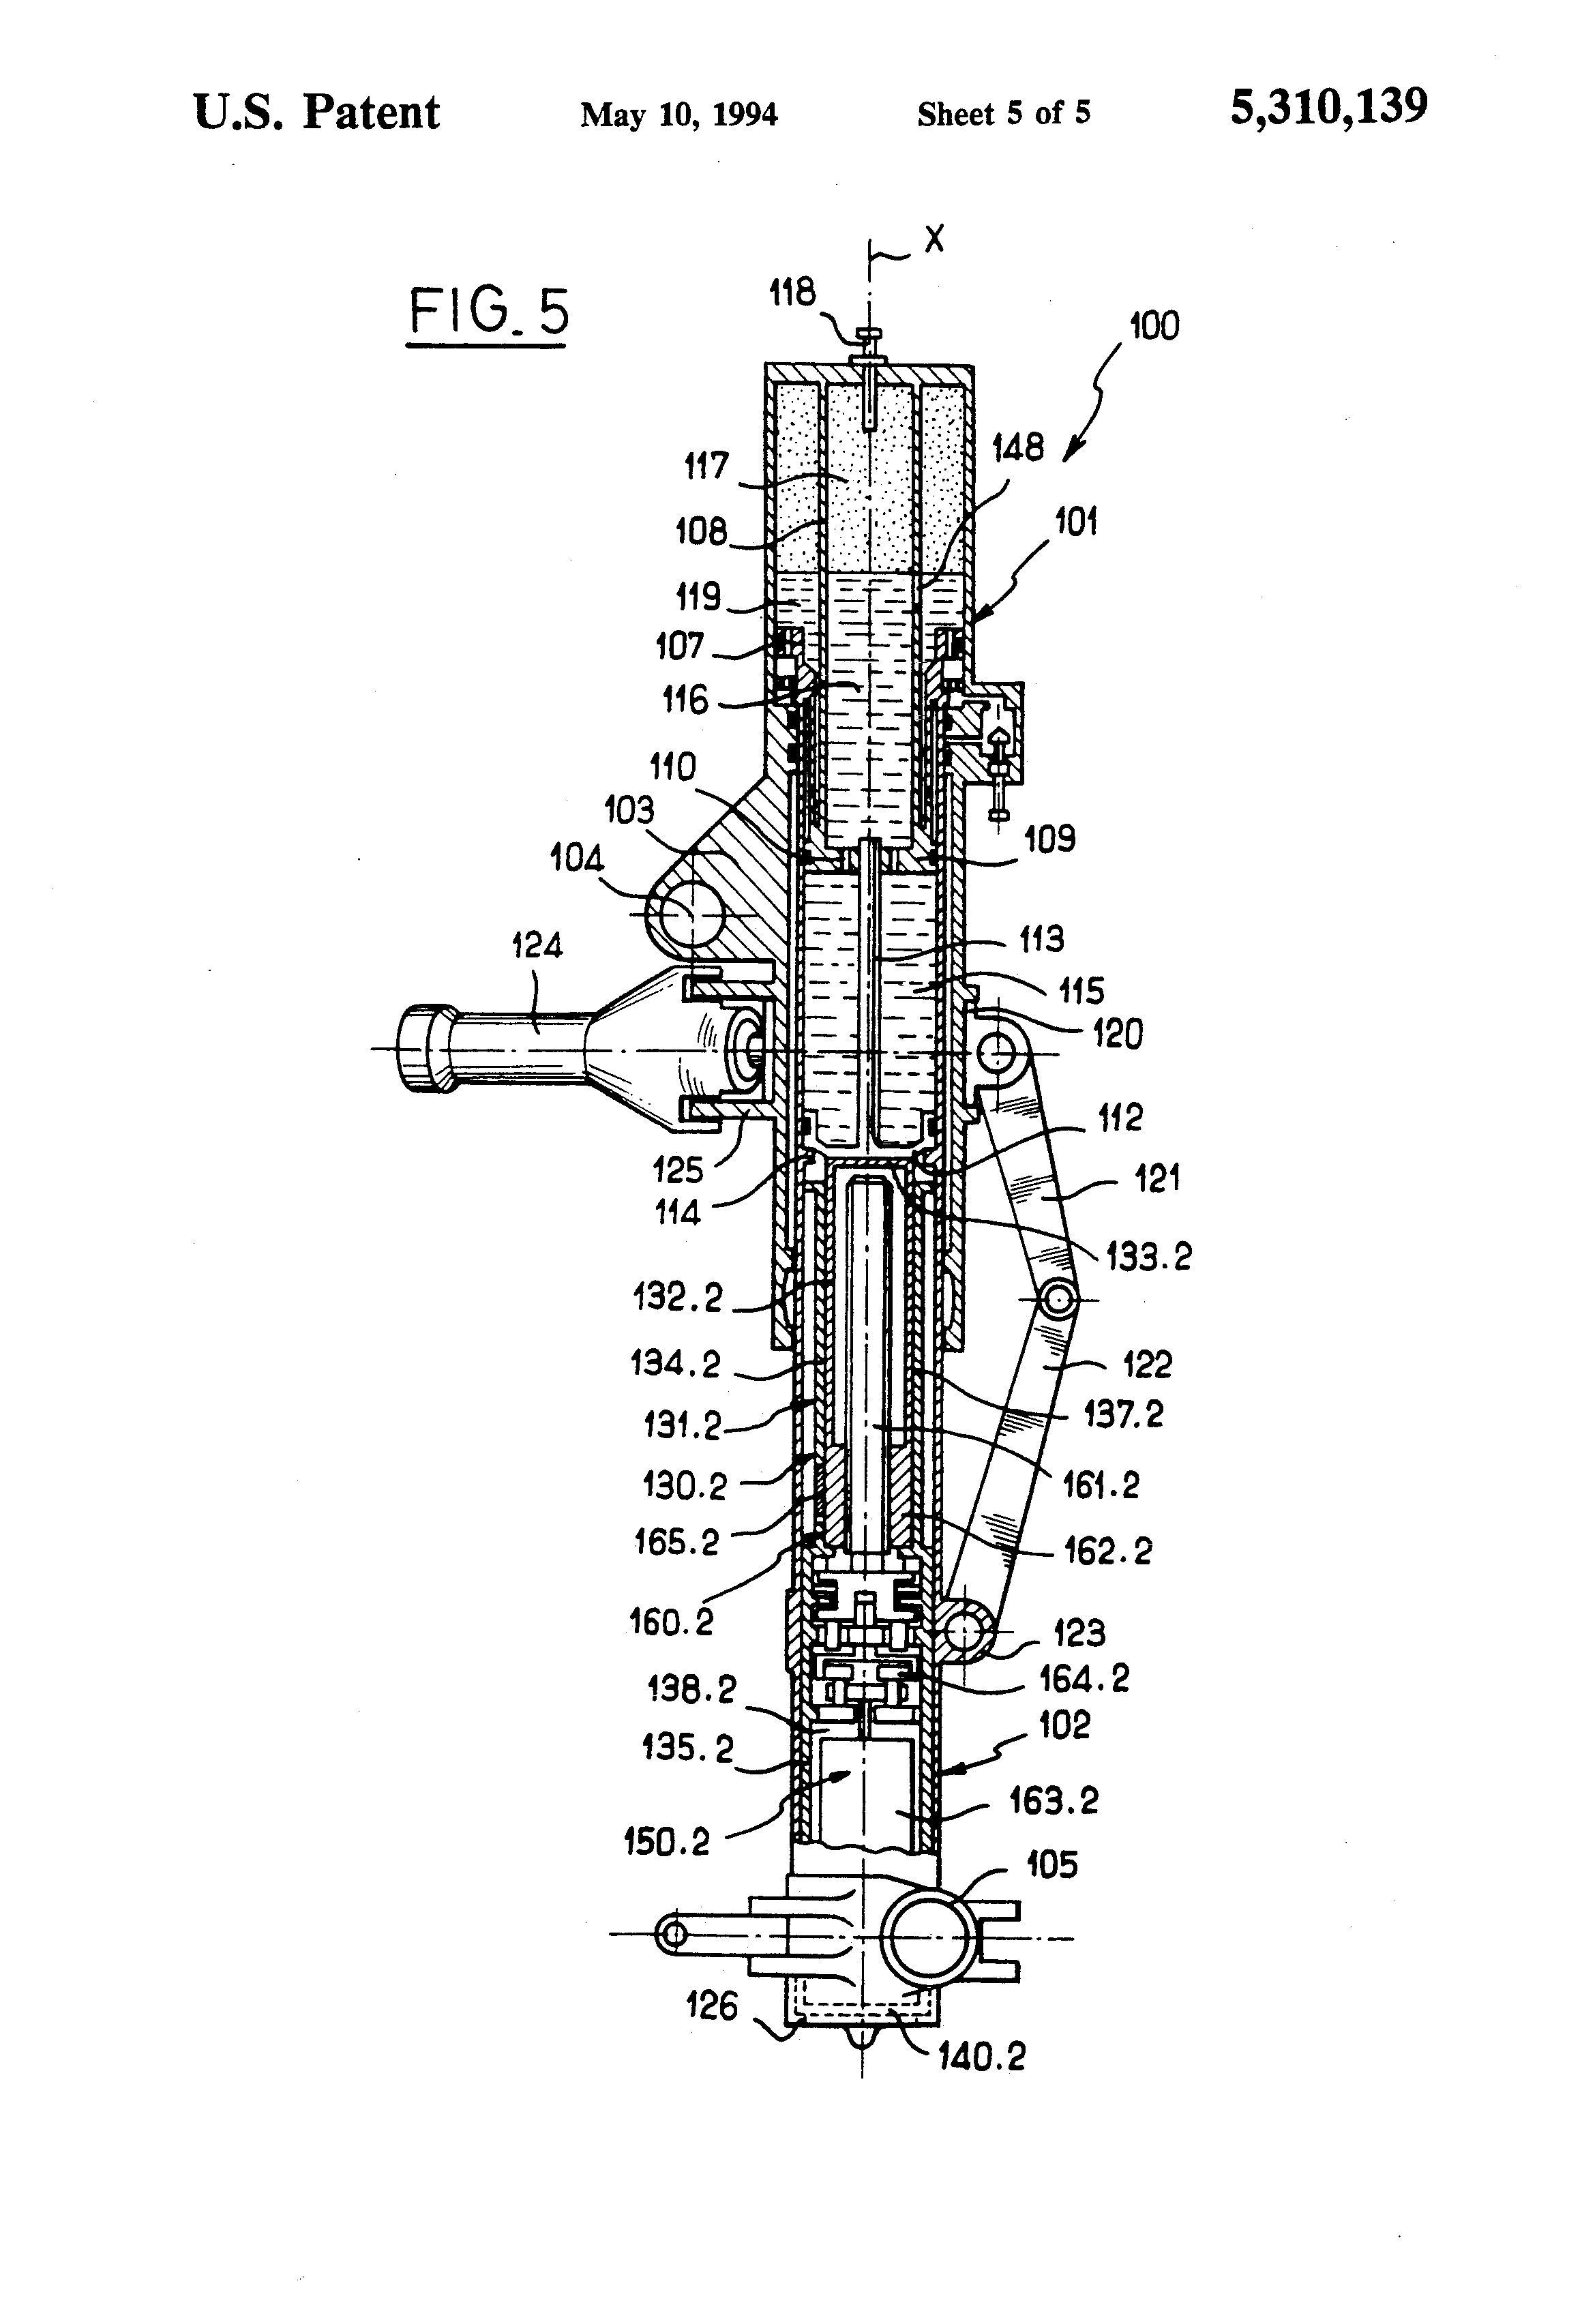 Shock Diagram Undercarriage 27 Wiring Images Jeep Cj Suspension Parts Years 197686 Including Pivot Eye Bushings Us5310139 5 Patent Absorber For Aircraft Landing Gear Durango 2004 At Highcare